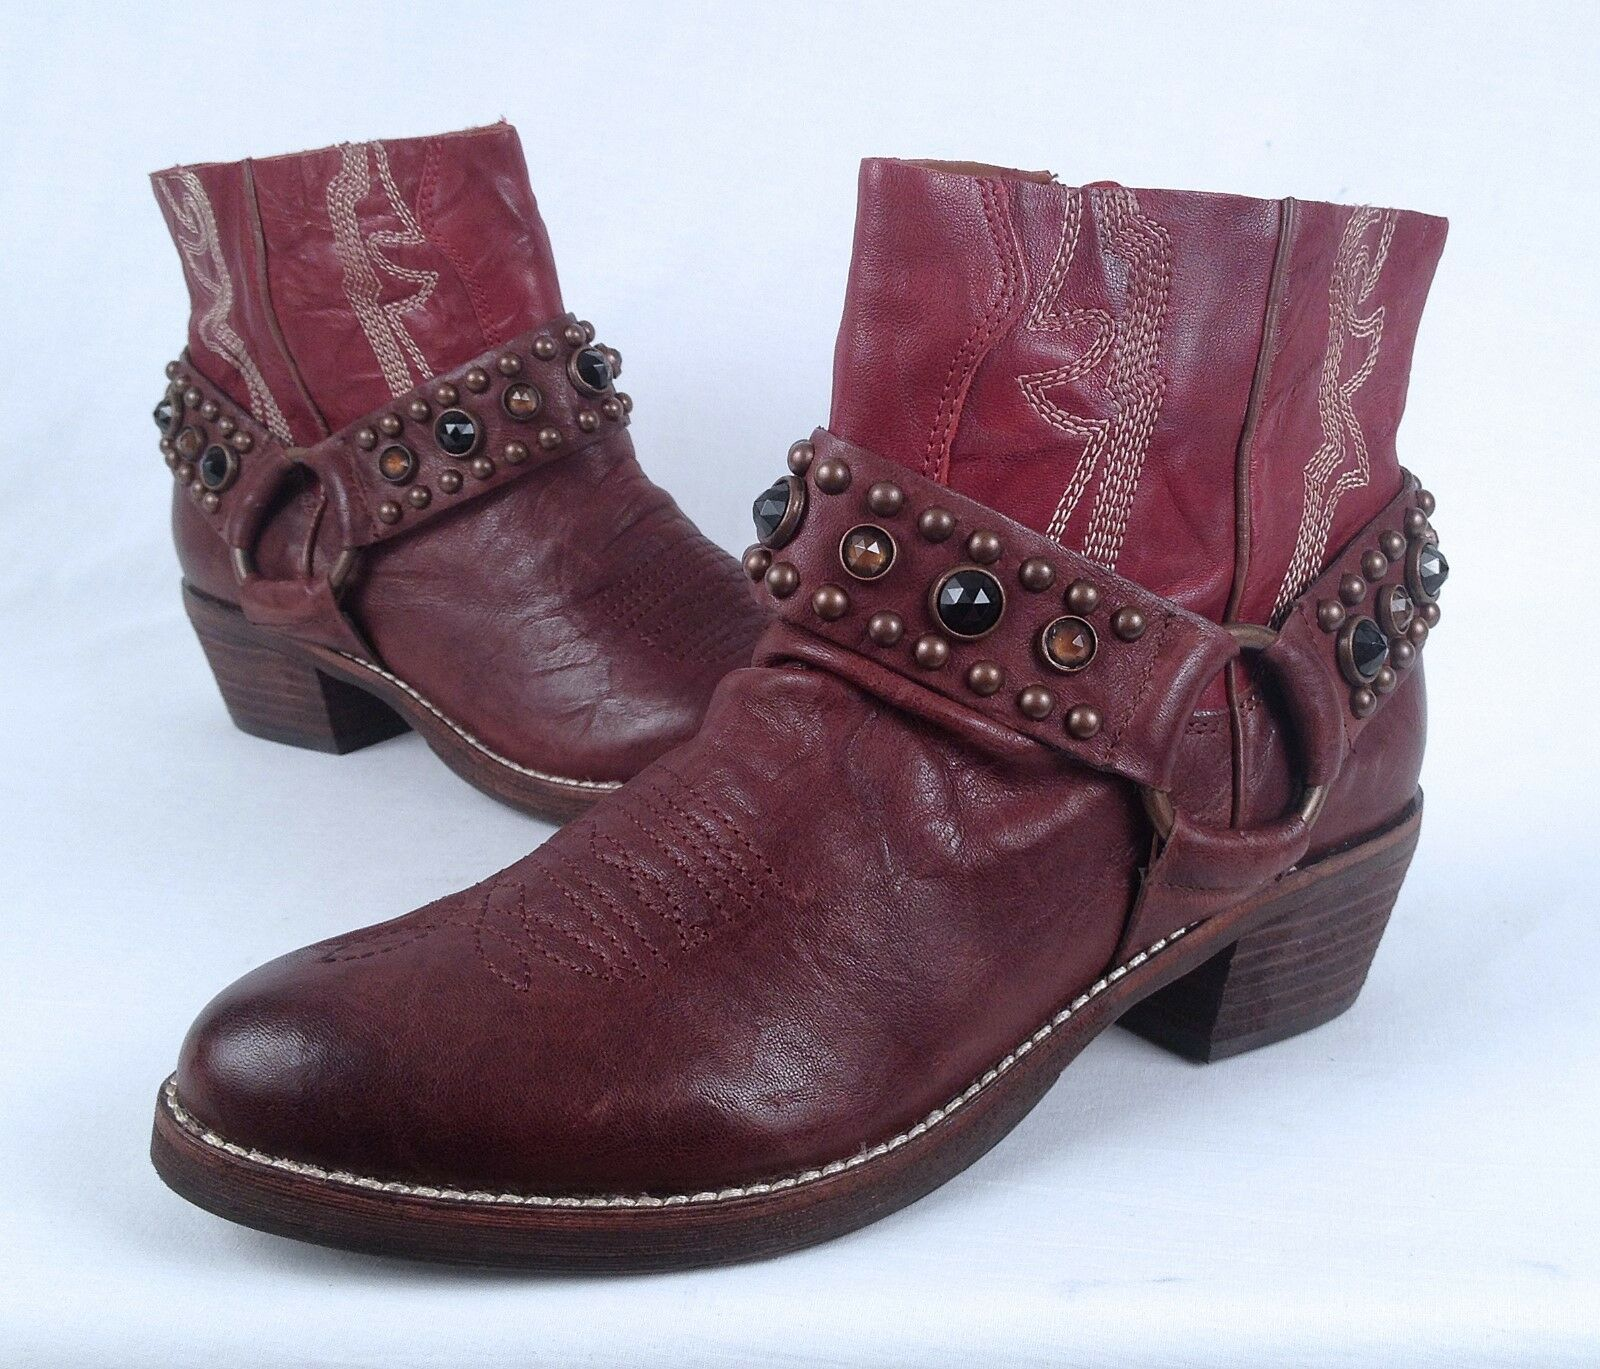 Sam Edelman 'Skyler' Jeweled Studded Studded Studded Short Boot- Brown Cognac- Size 6 M (B25) bd086b